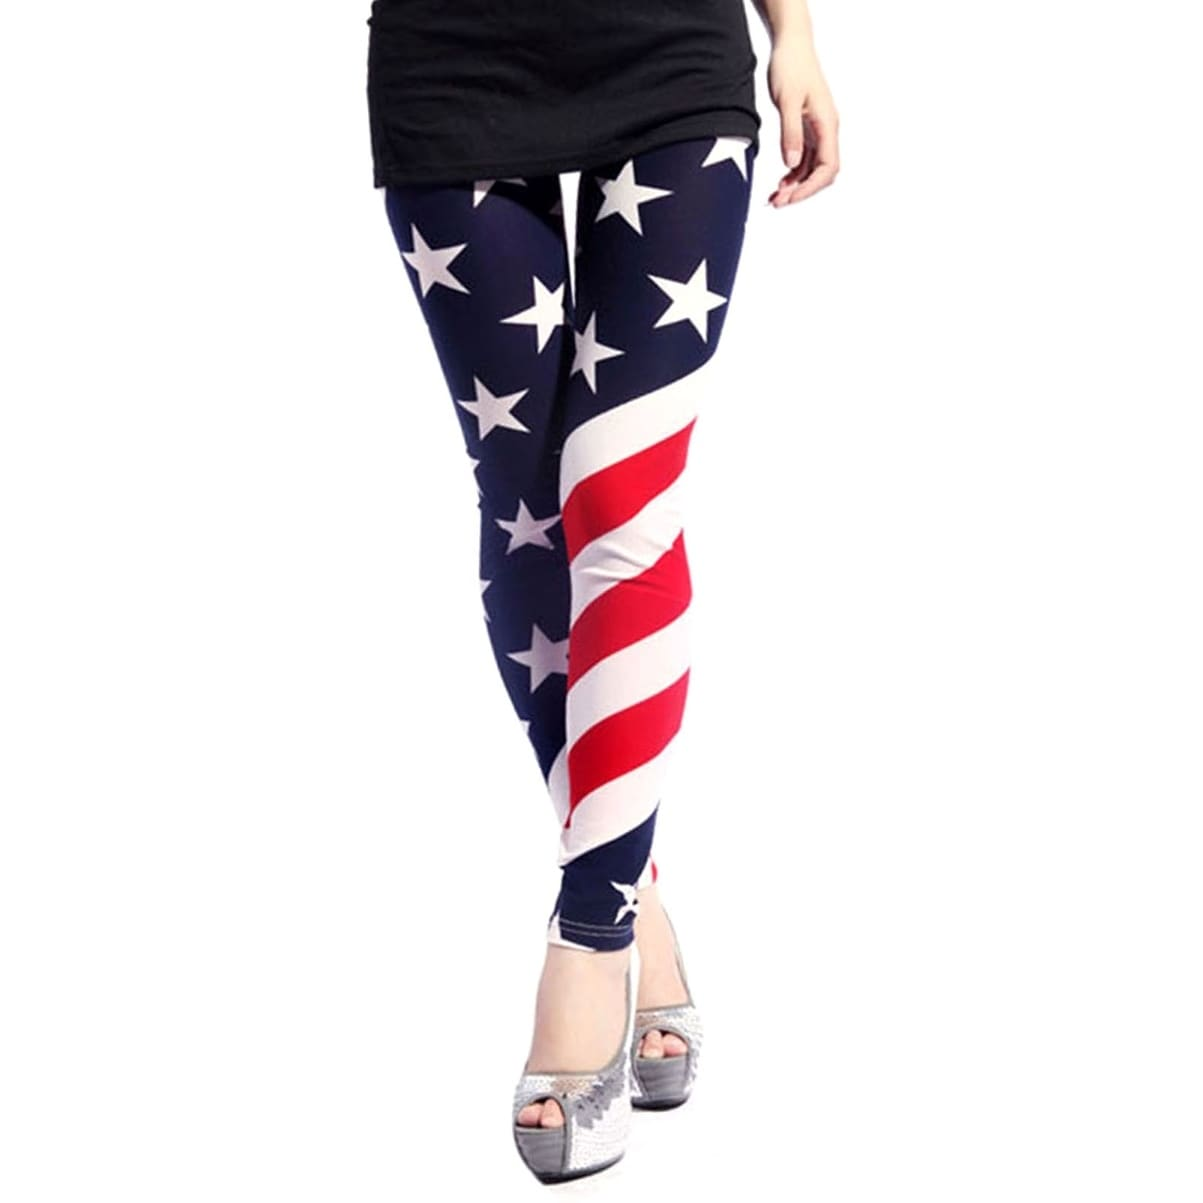 Patterned Pants Womens Awesome Decoration